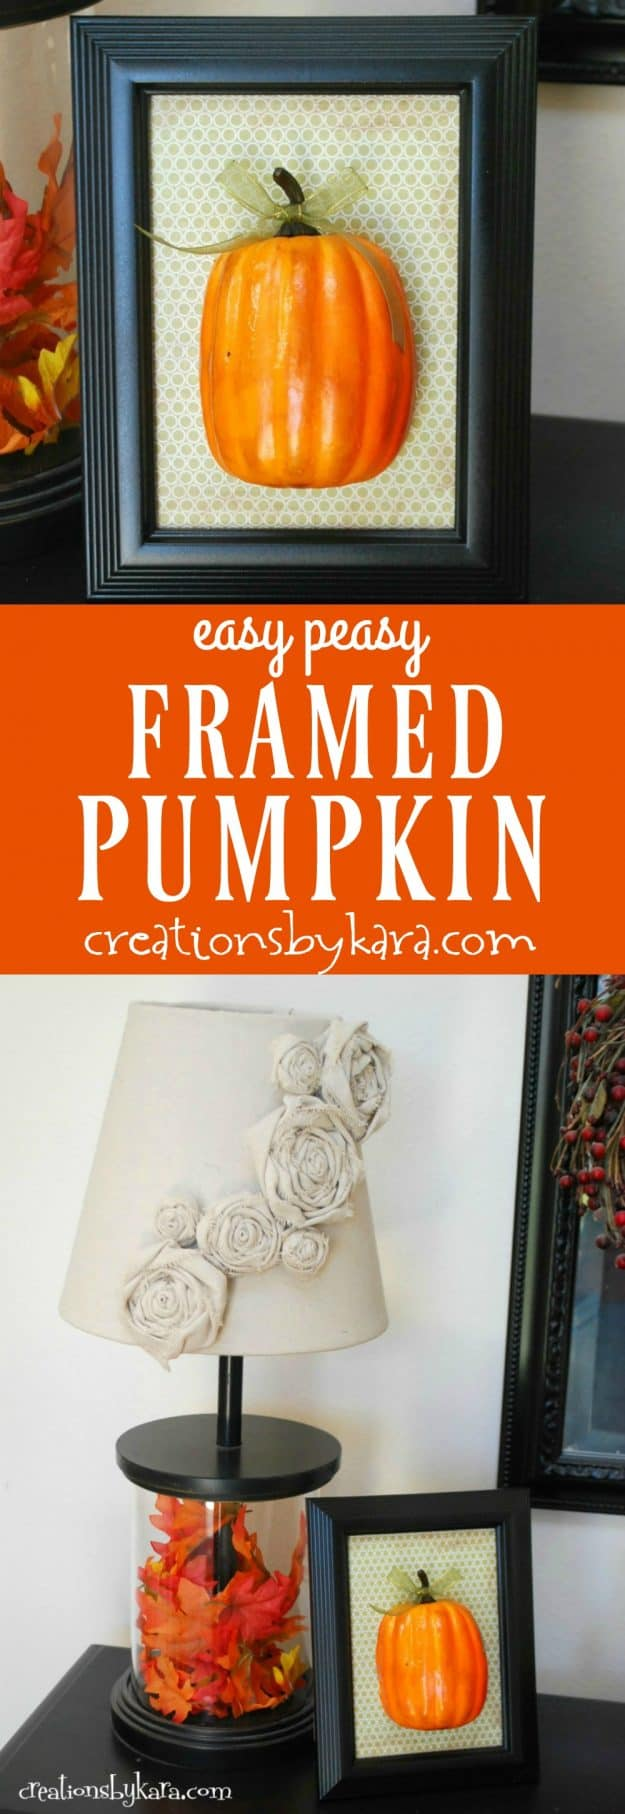 This framed pumpkin takes only minutes to make. A simple and fun fall decoration!